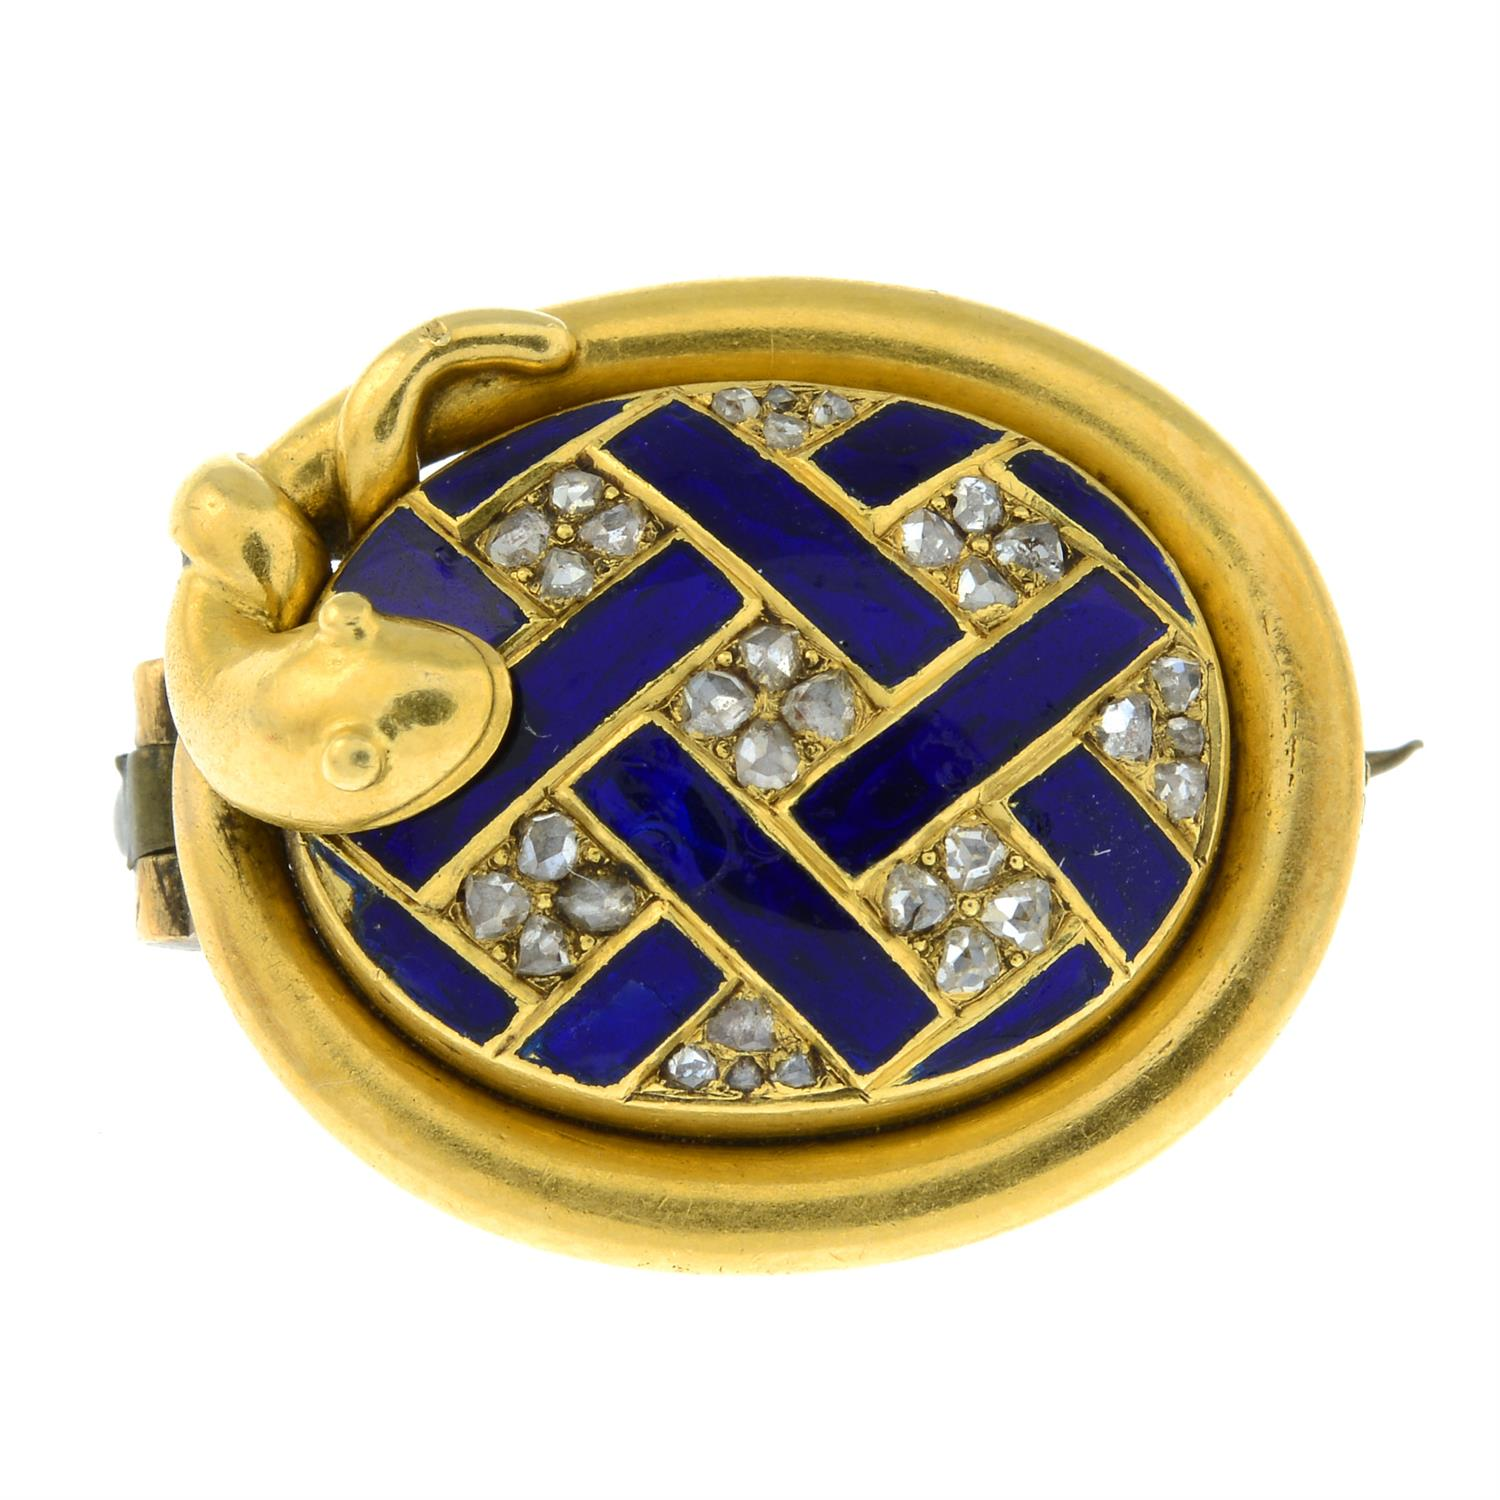 A 19th century gold rose-cut diamond and blue enamel lattice brooch, with snake surround and locket - Image 2 of 5